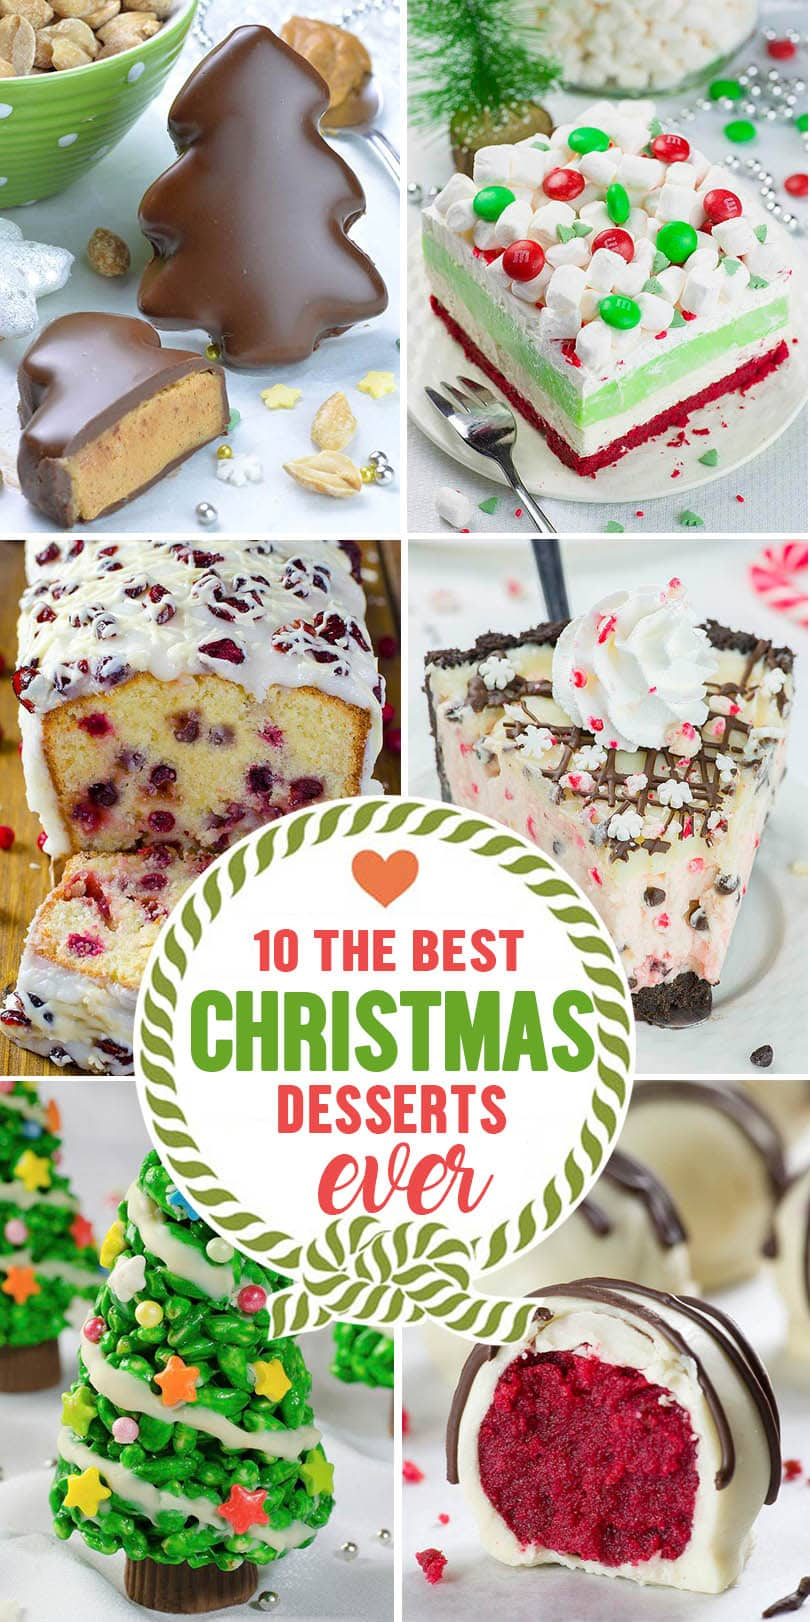 December is the best time of year for indulging in dessert. Try one of our best recipes for Christmas desserts!